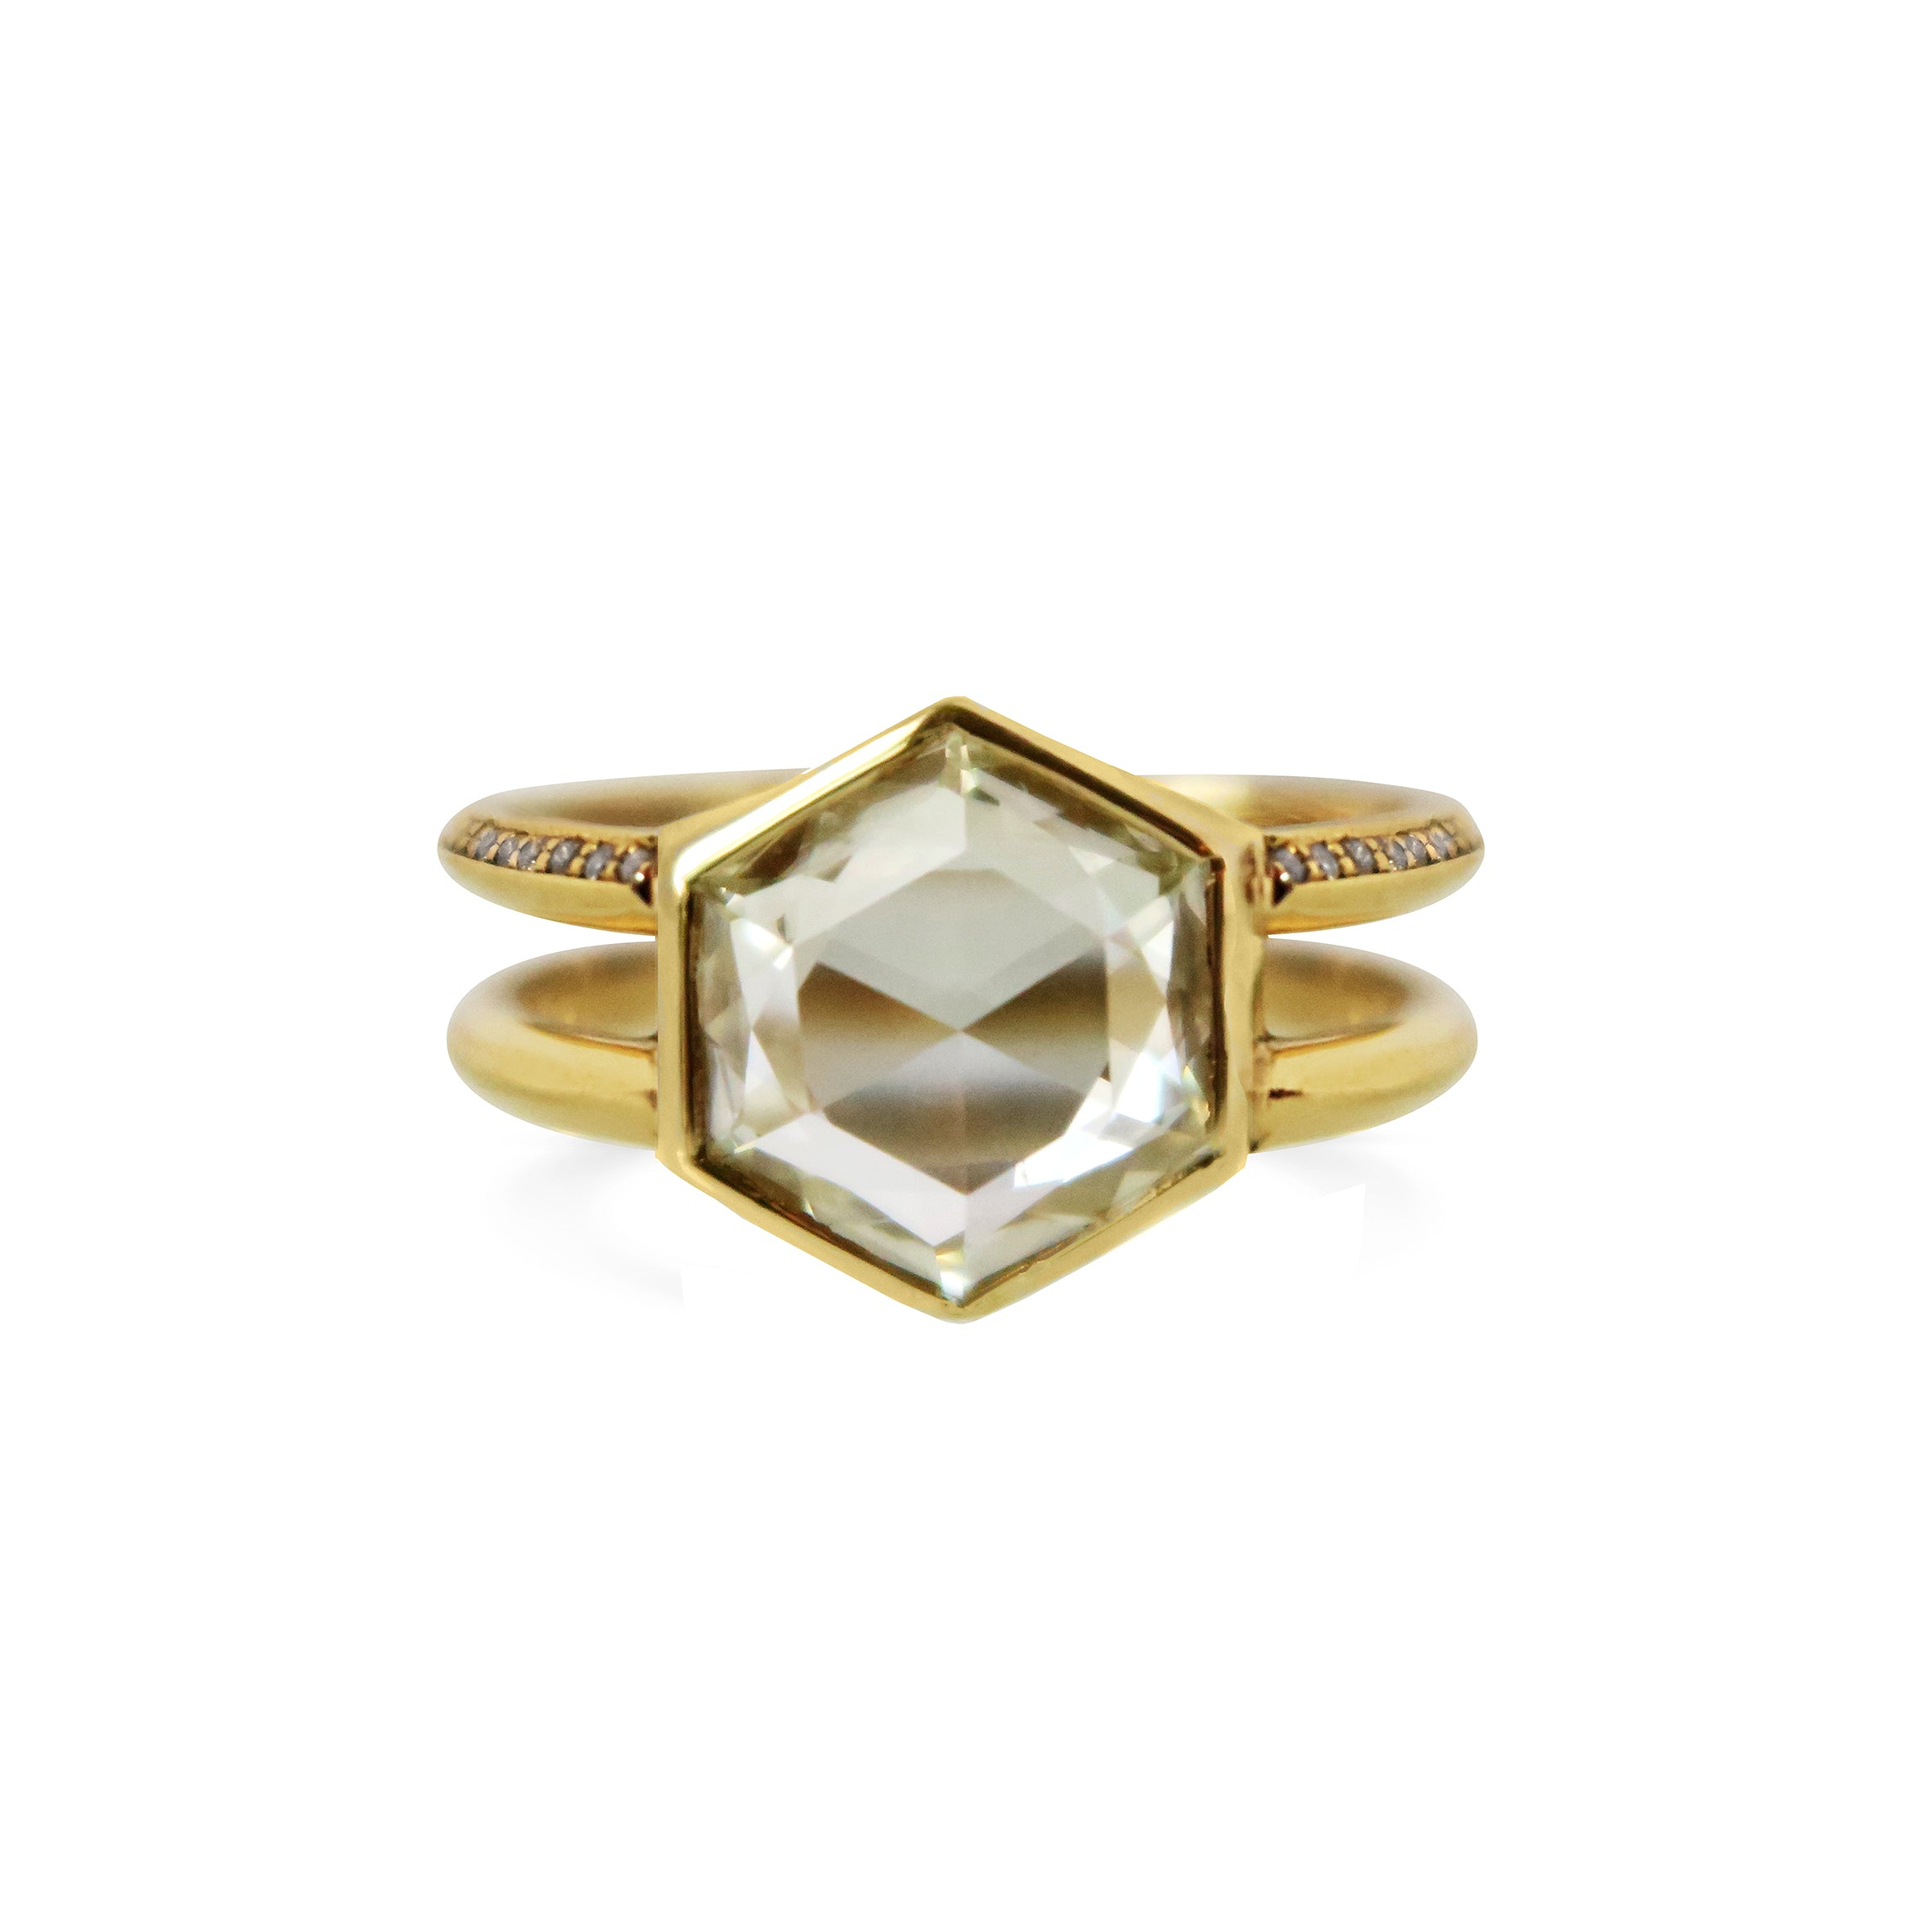 2ct Rosecut Hexagon Diamond Ring with double knife egde band 18ct Yellow Gold